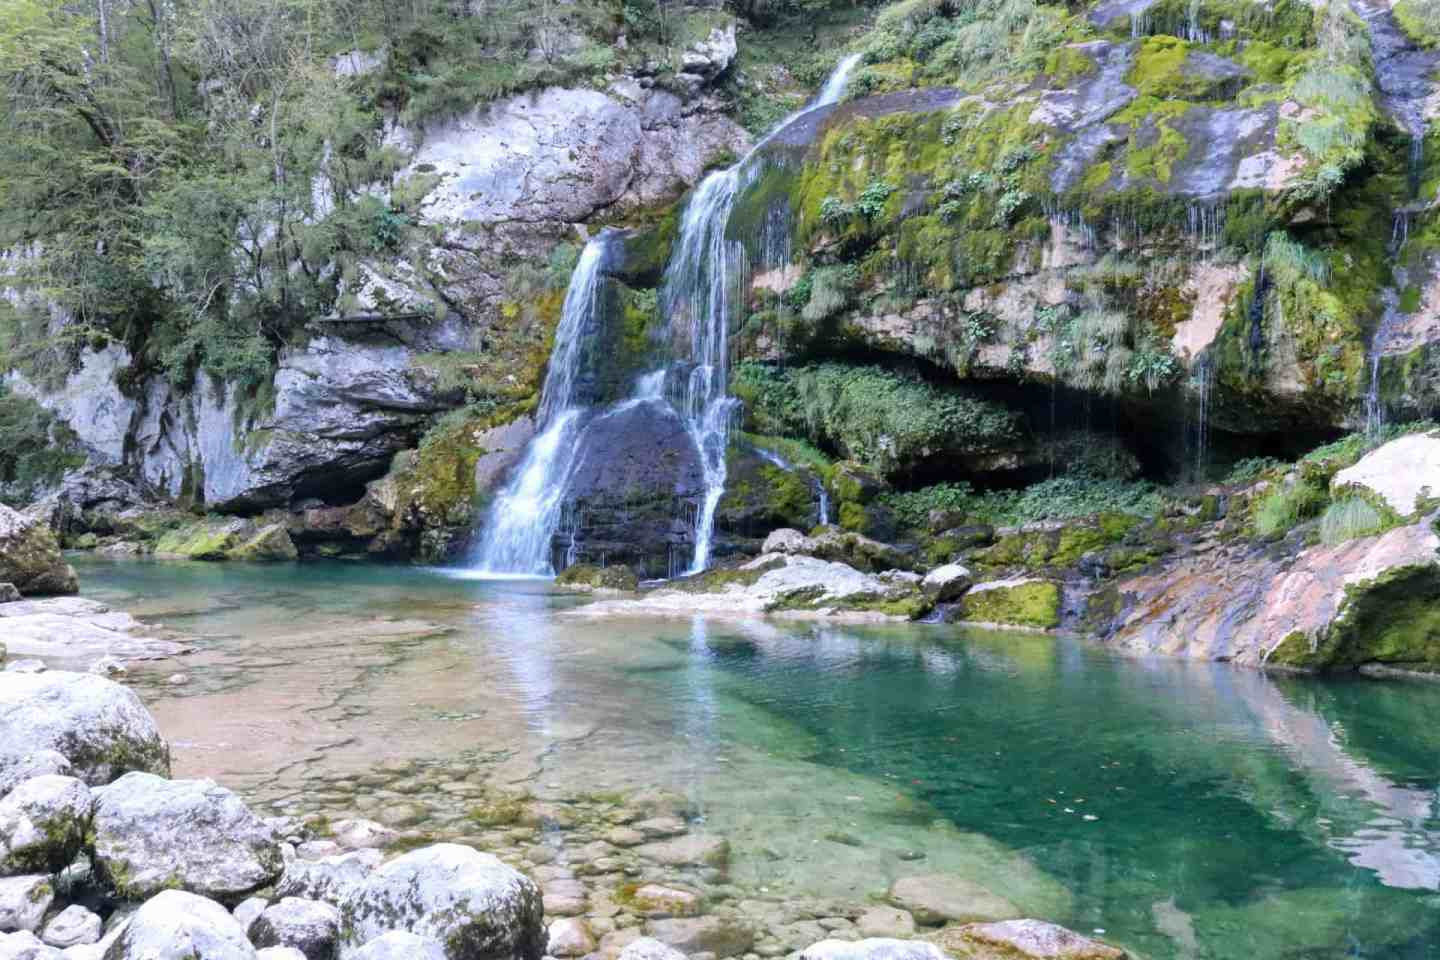 Virje waterfall most beautiful waterfall in slovenia